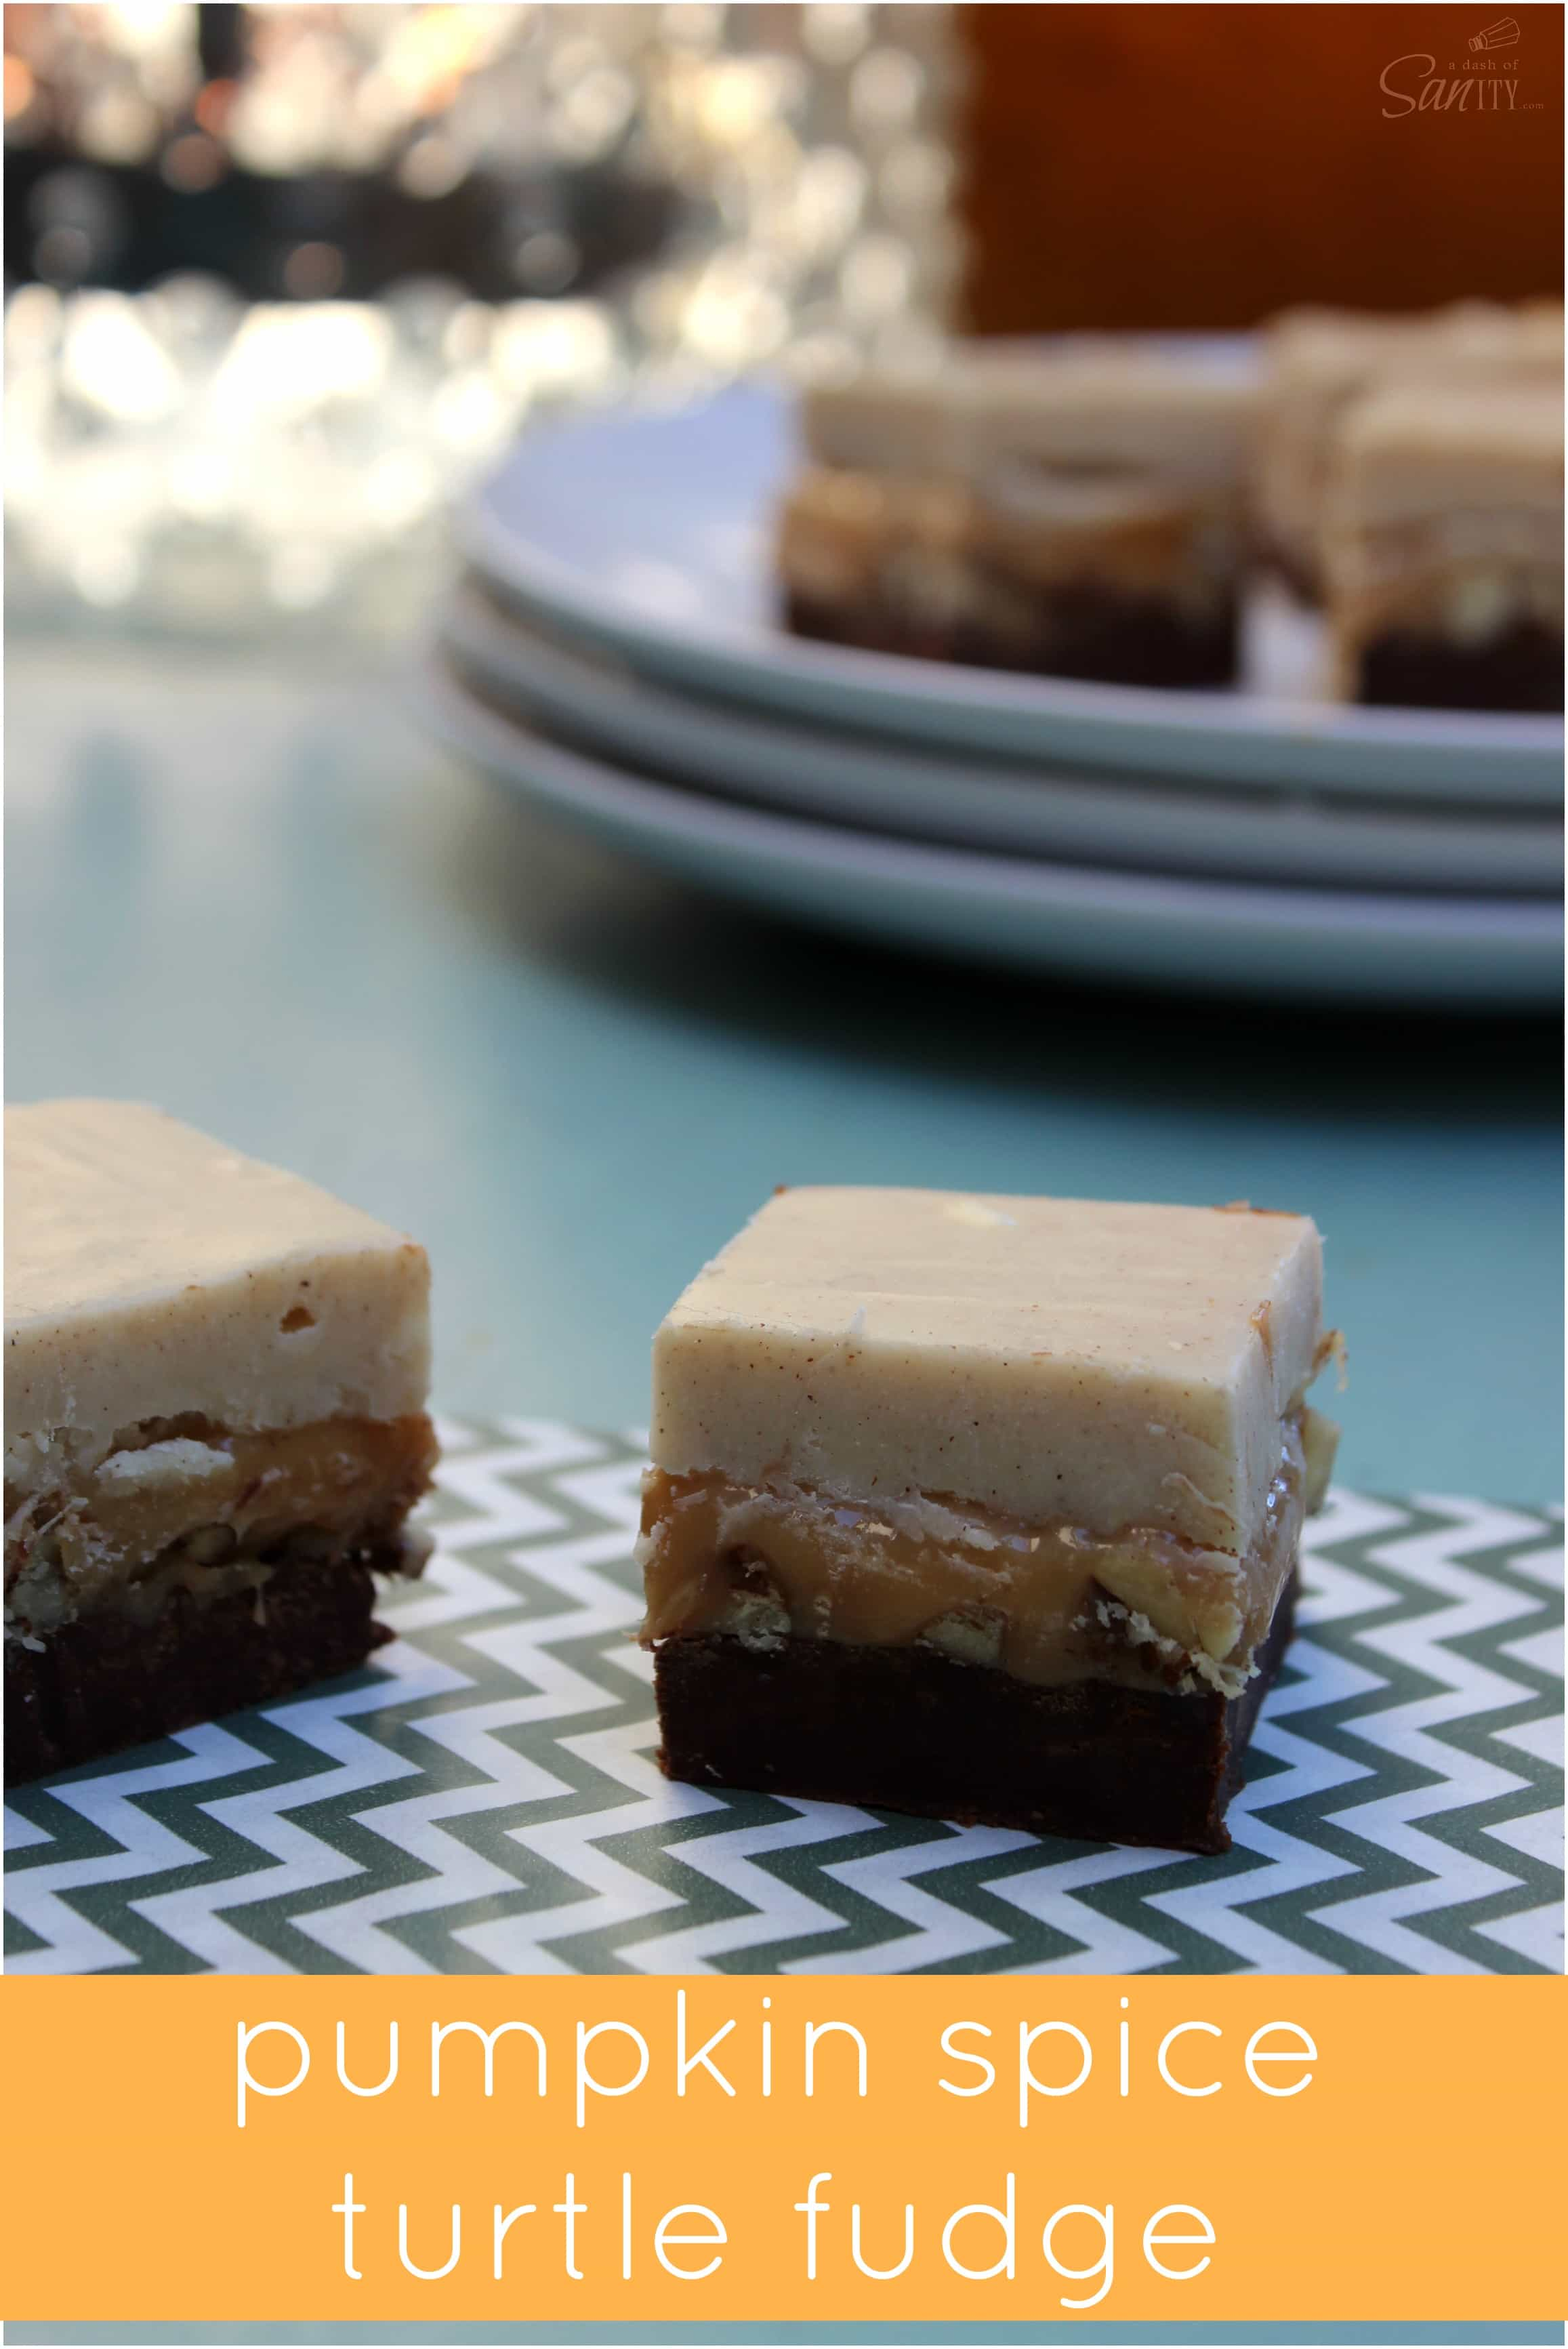 Pumpkin Spice Turtle Fudge